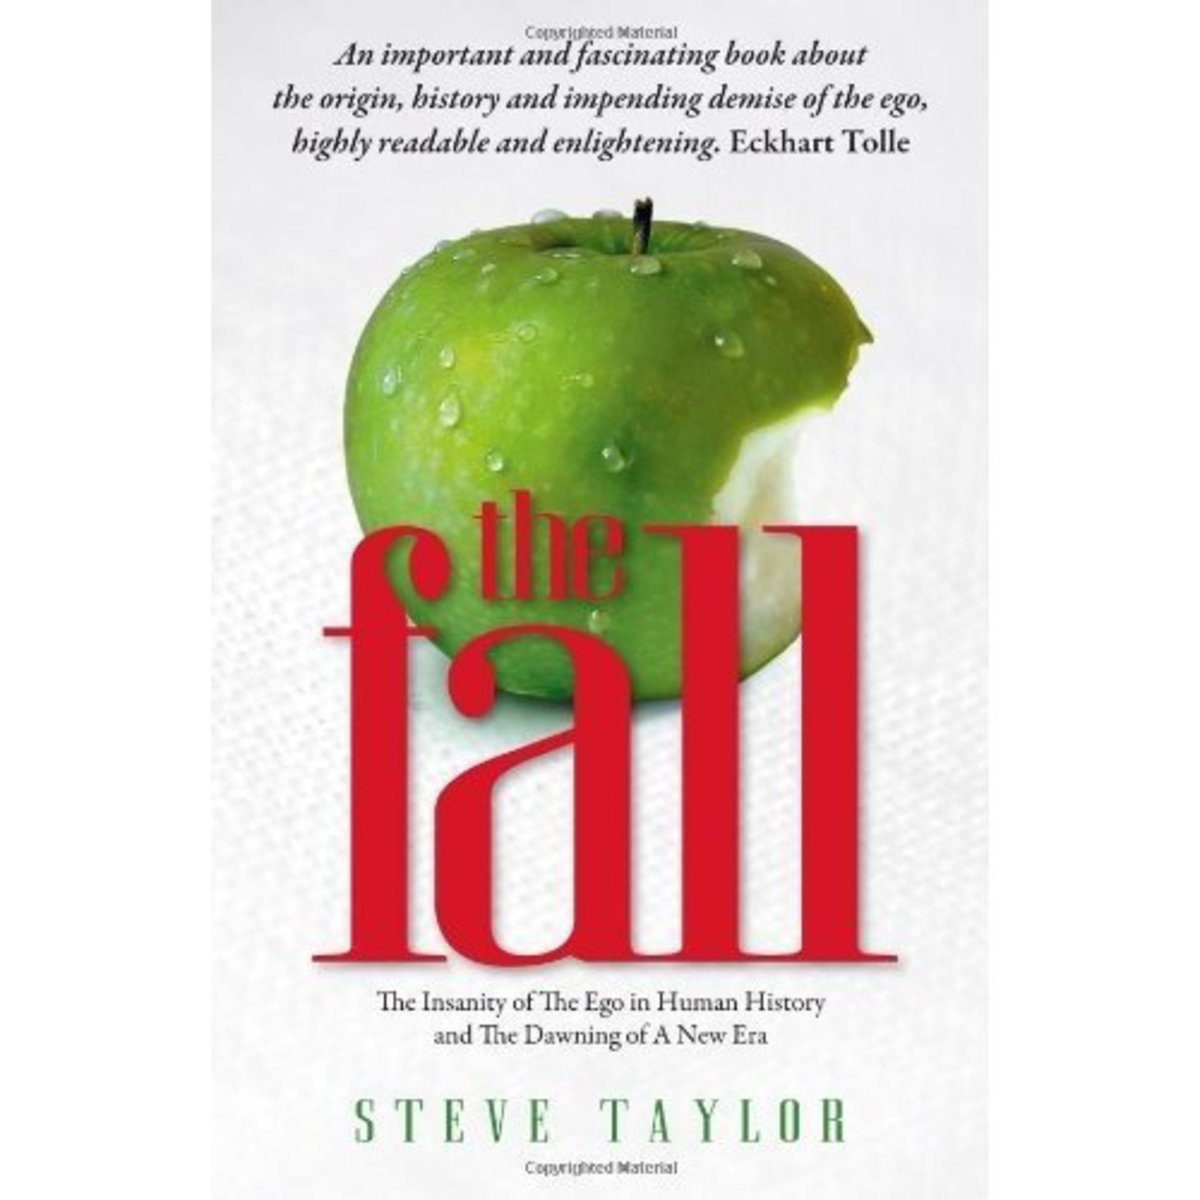 'The Fall: The Insanity of the Ego in Human History and the Dawning of A New Era' by Steve Taylor